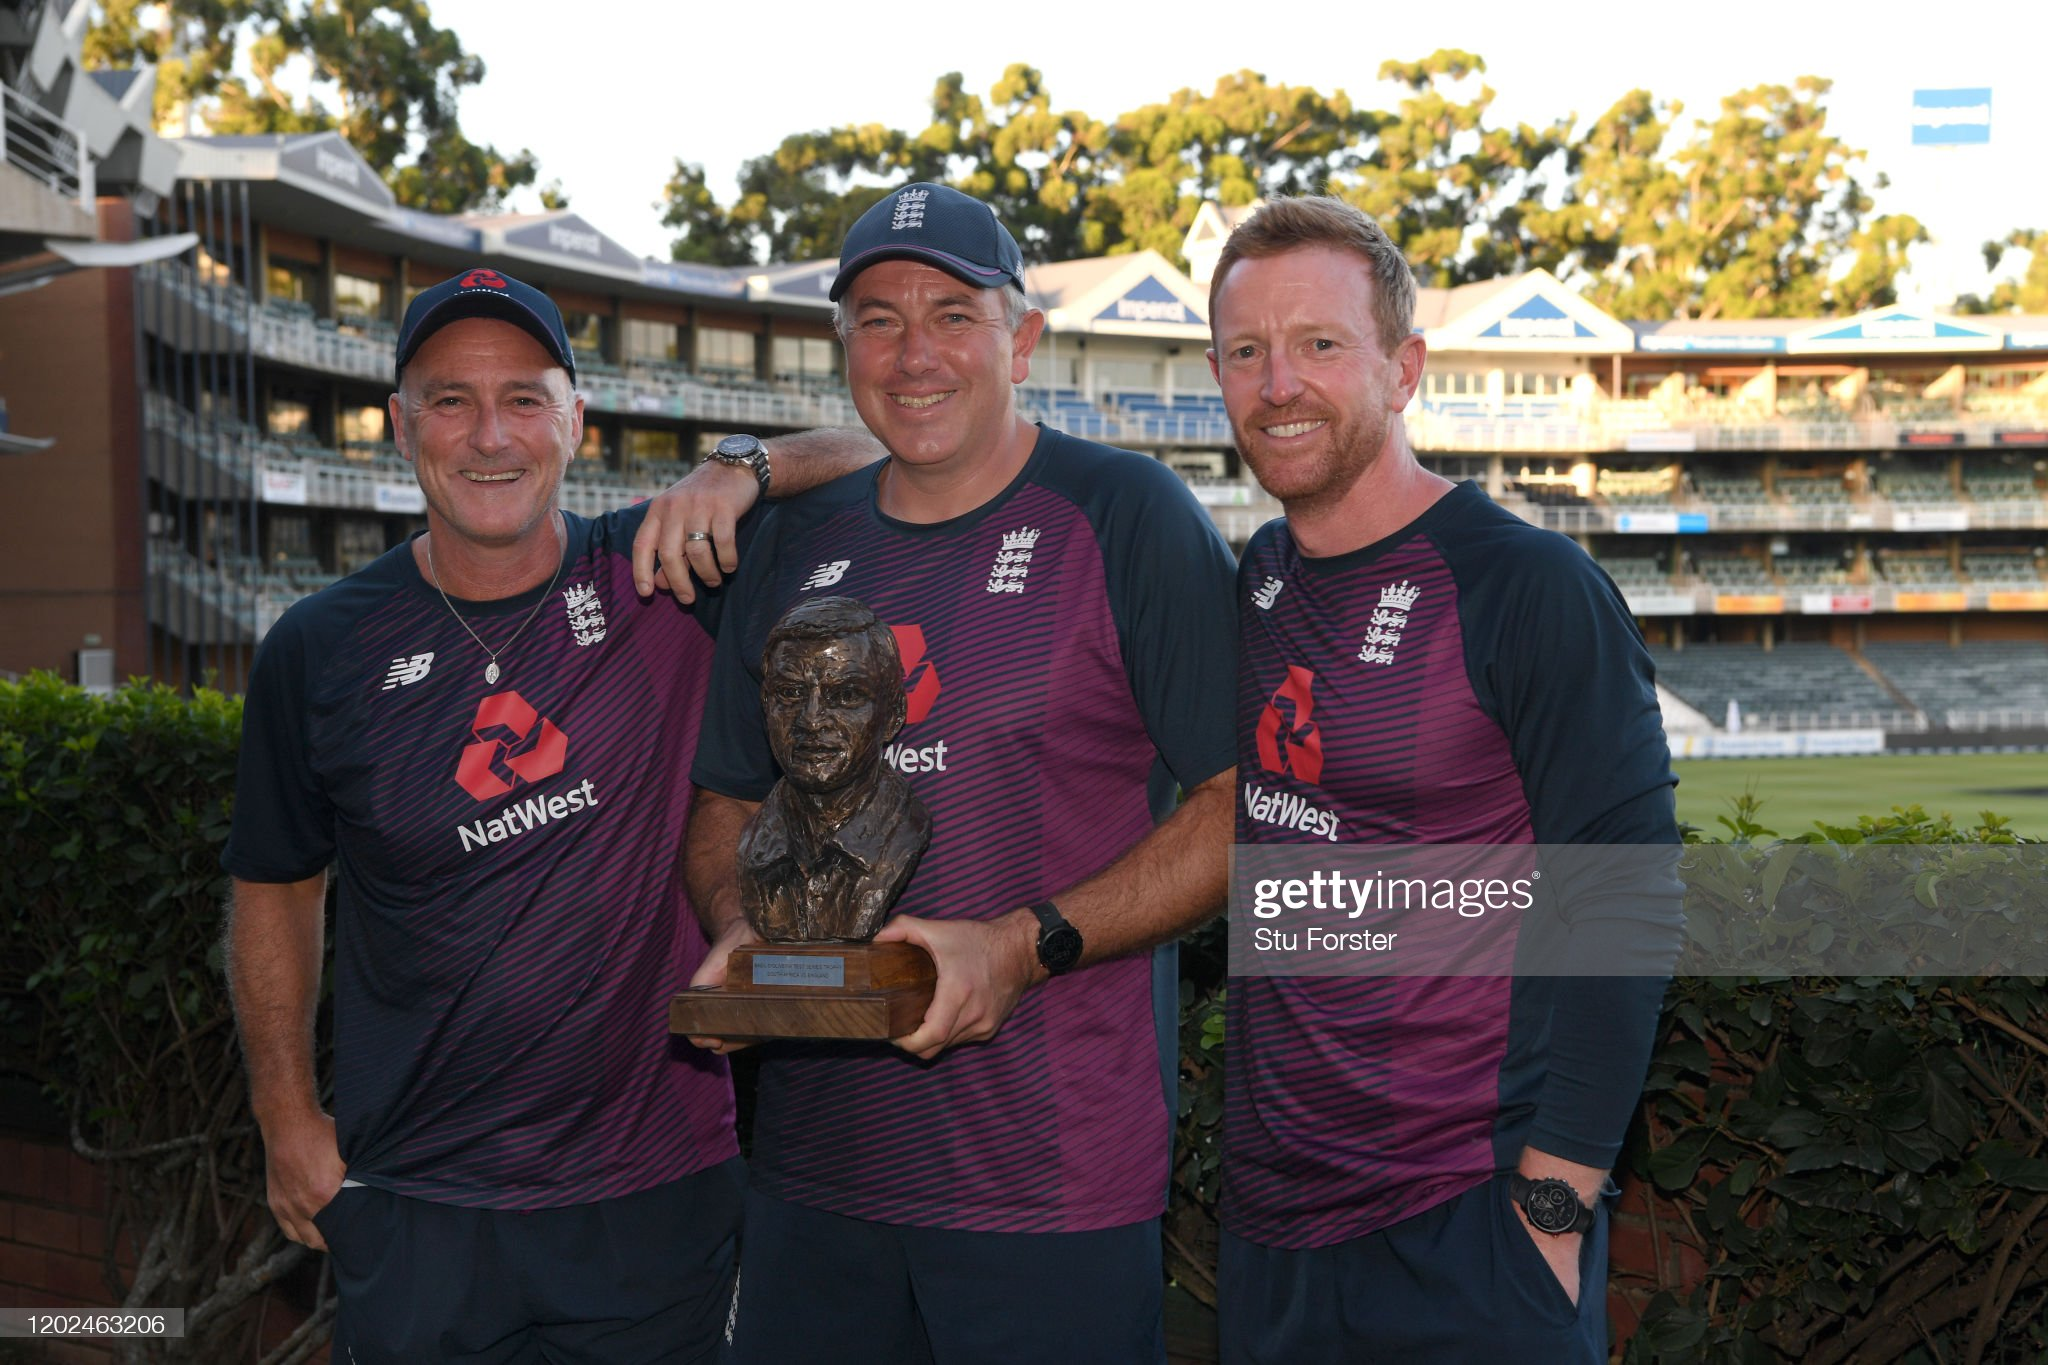 England coaches Chris Silverwood (c) with Graham Thorpe (batting coach) and Paul Collingwood (Photo by Stu Forster/Getty Images)